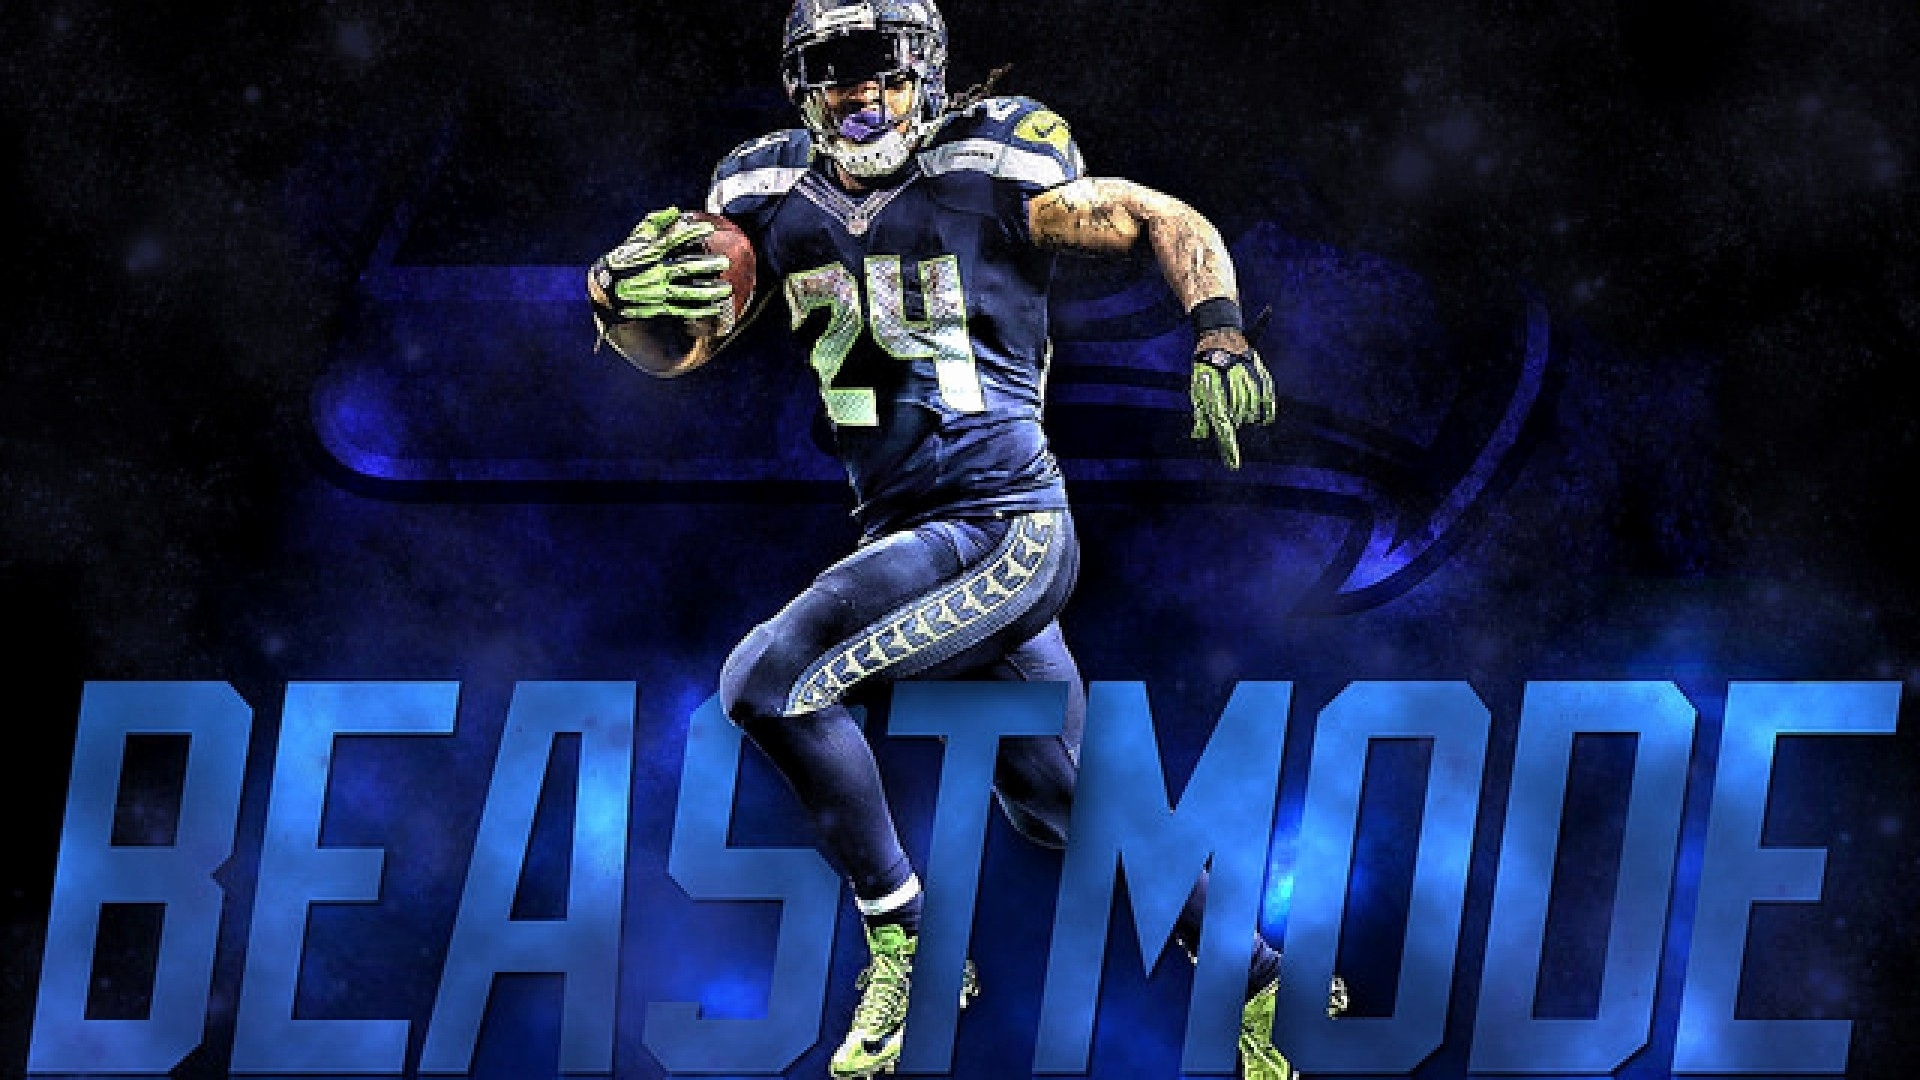 marshawn lynch wallpaper lovely cool marshawn lynch wallpaper 81